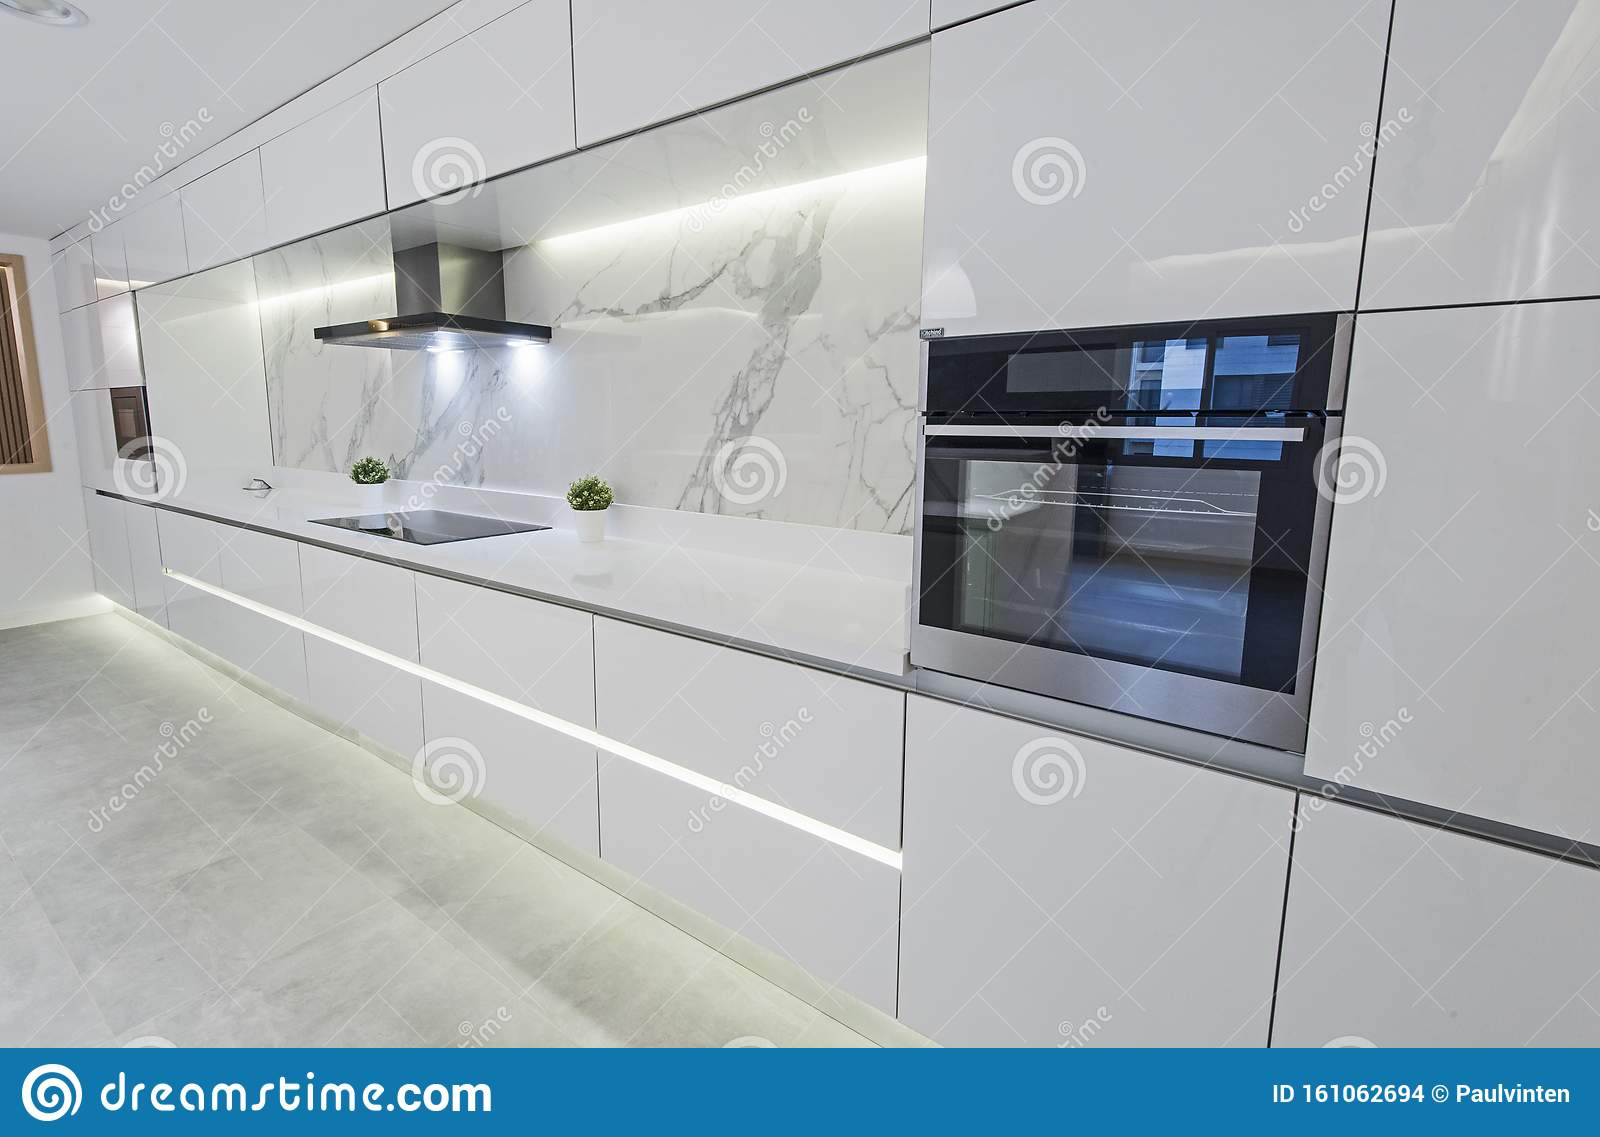 Modern Kitchen Design In A Luxury Apartment Stock Photo Image Of Drawer Cupboard 161062694